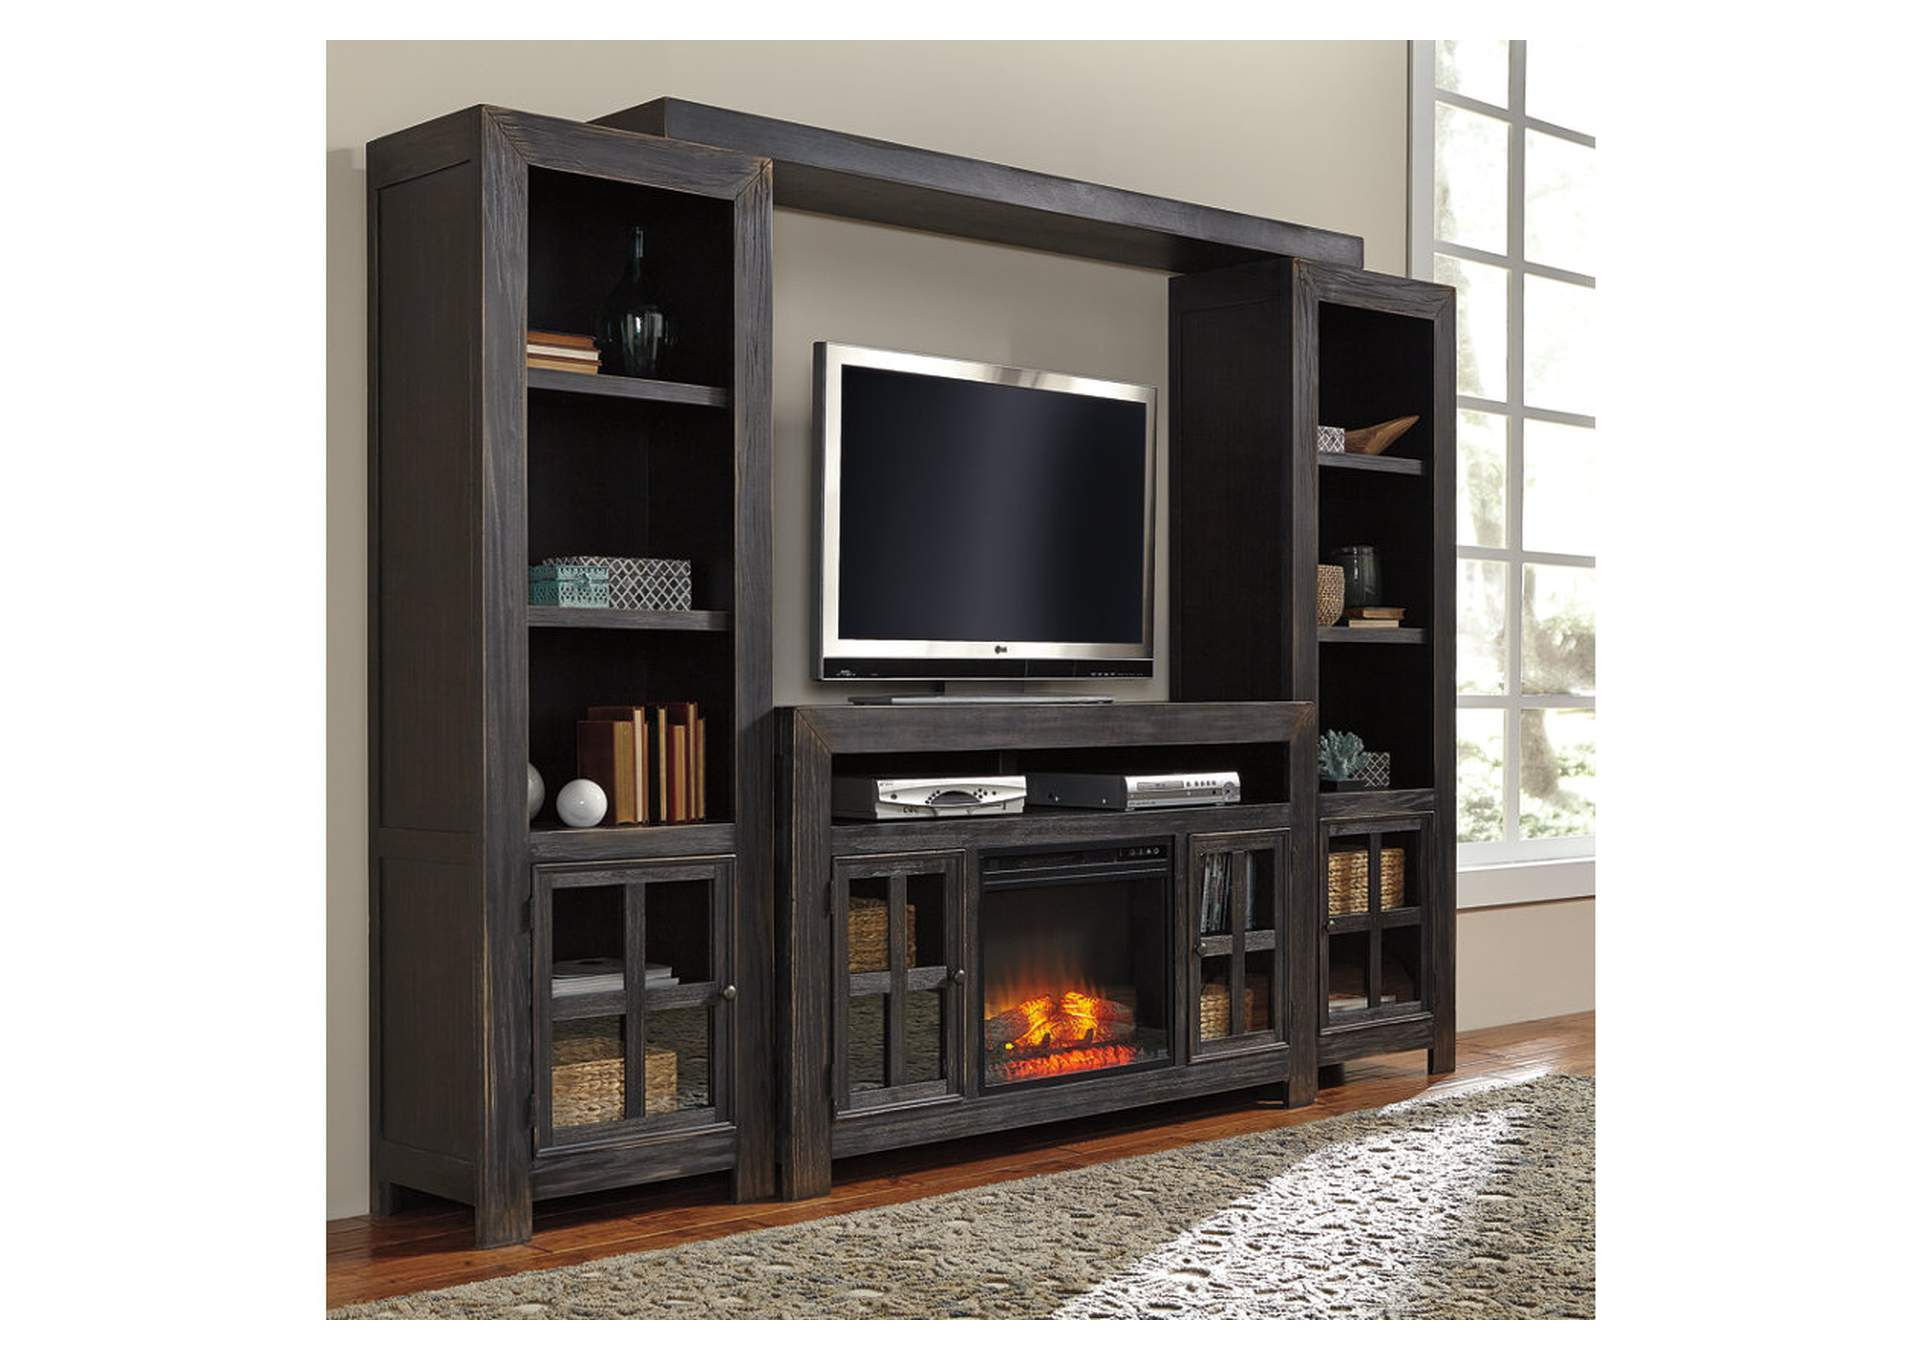 Gavelston Black Entertainment Center w/LED Fireplace Insert,Signature Design By Ashley